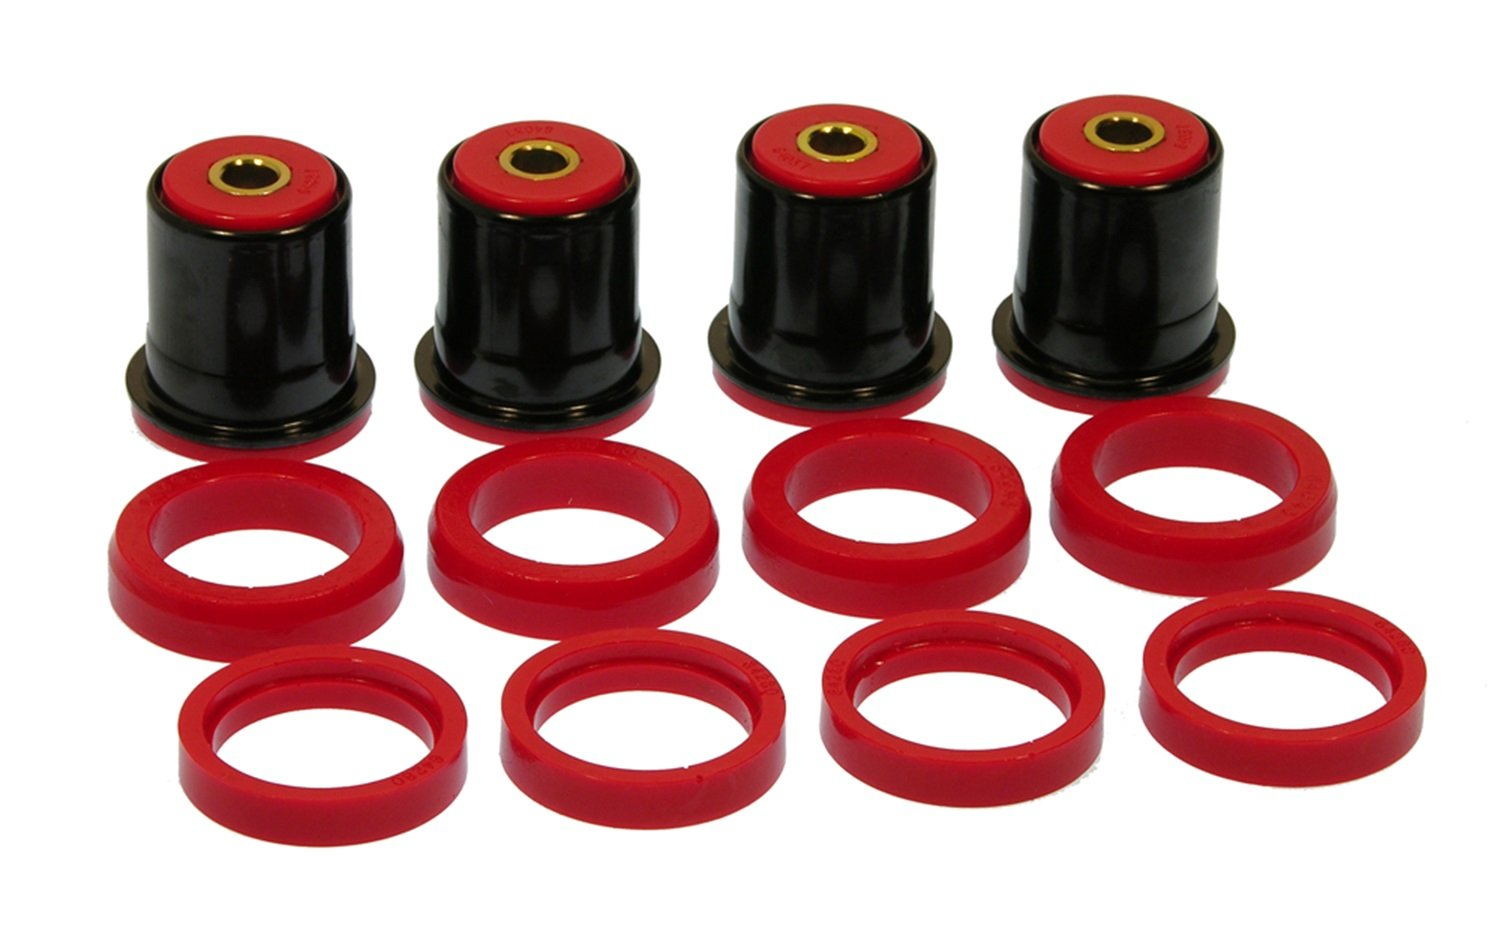 Prothane 7-226 Red Rear Control Arm Bushing Kit with Shells